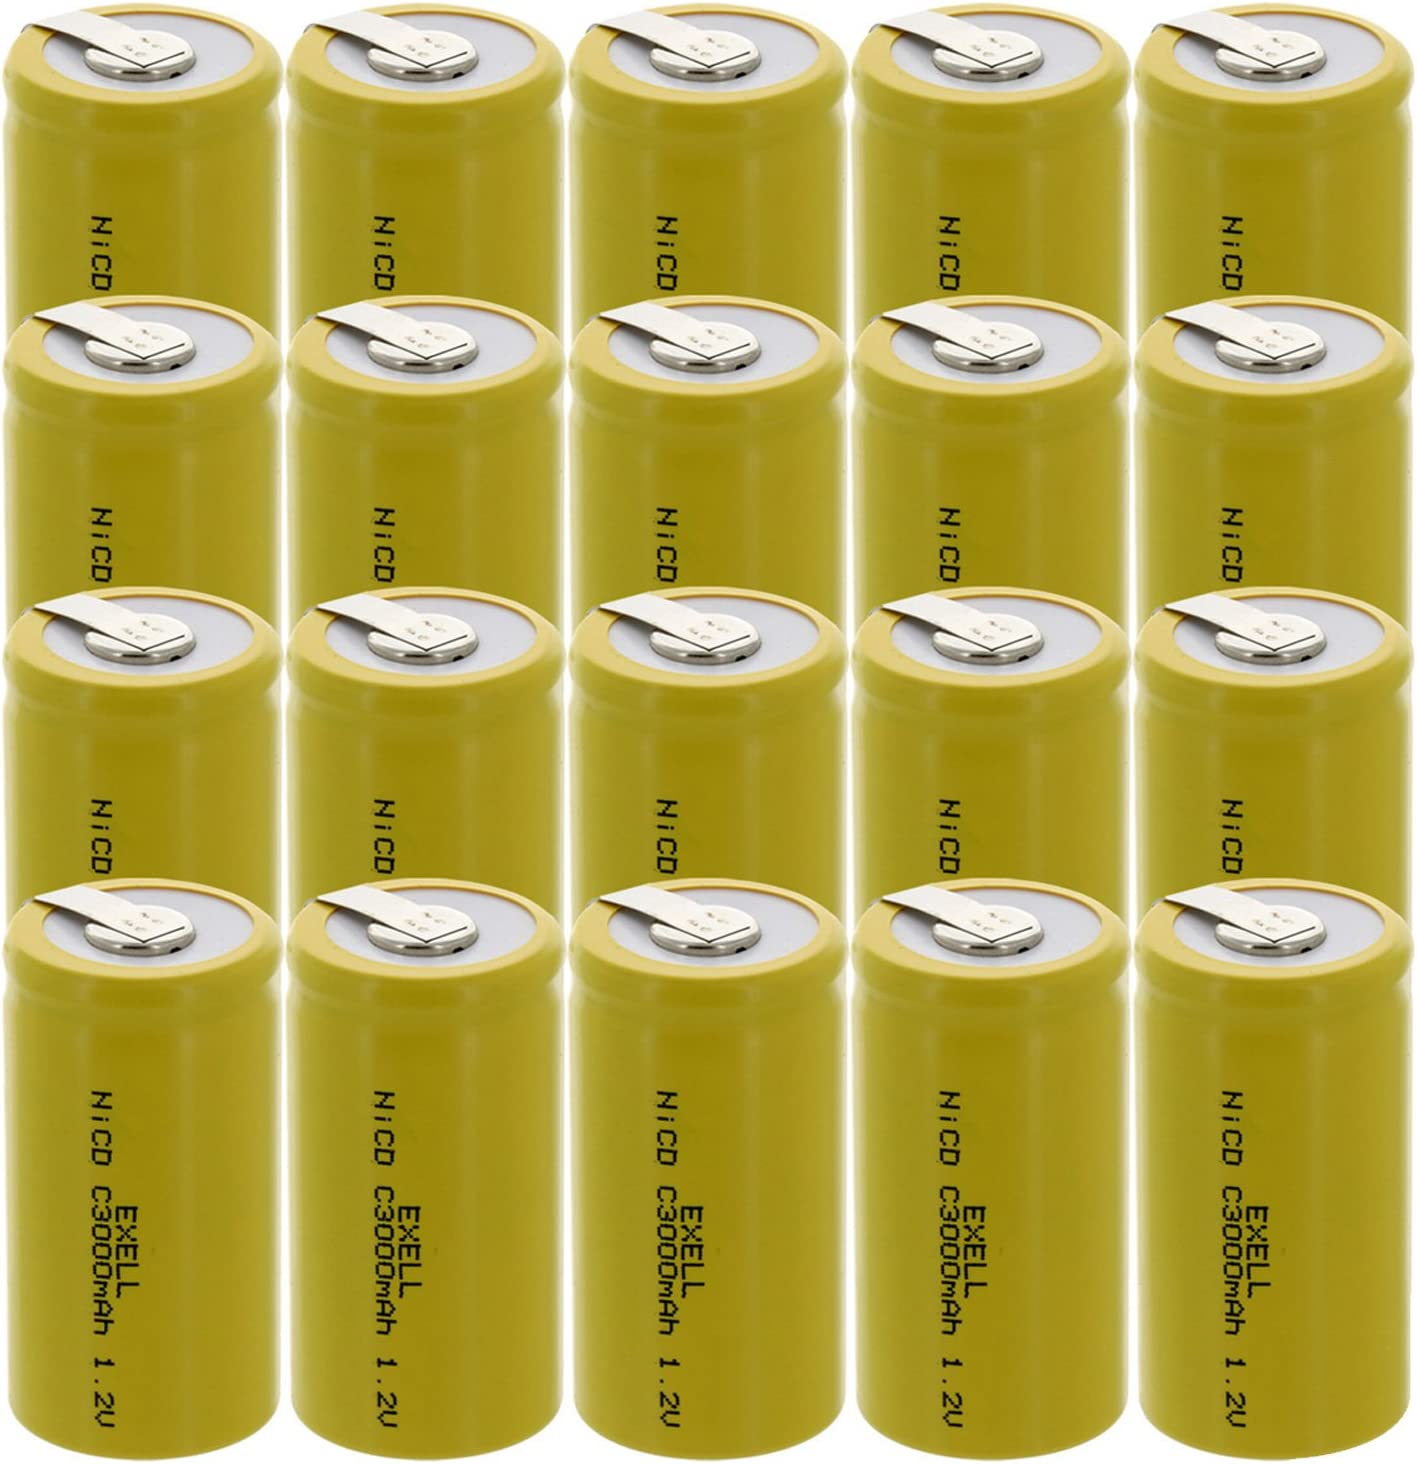 20x Exell C Size 1.2V 3000mAh NiCD Rechargeable Batteries with Tabs for meters, radios, hybrid automobiles, high power static applications (Telecoms, UPS and Smart grid), radio controlled devices